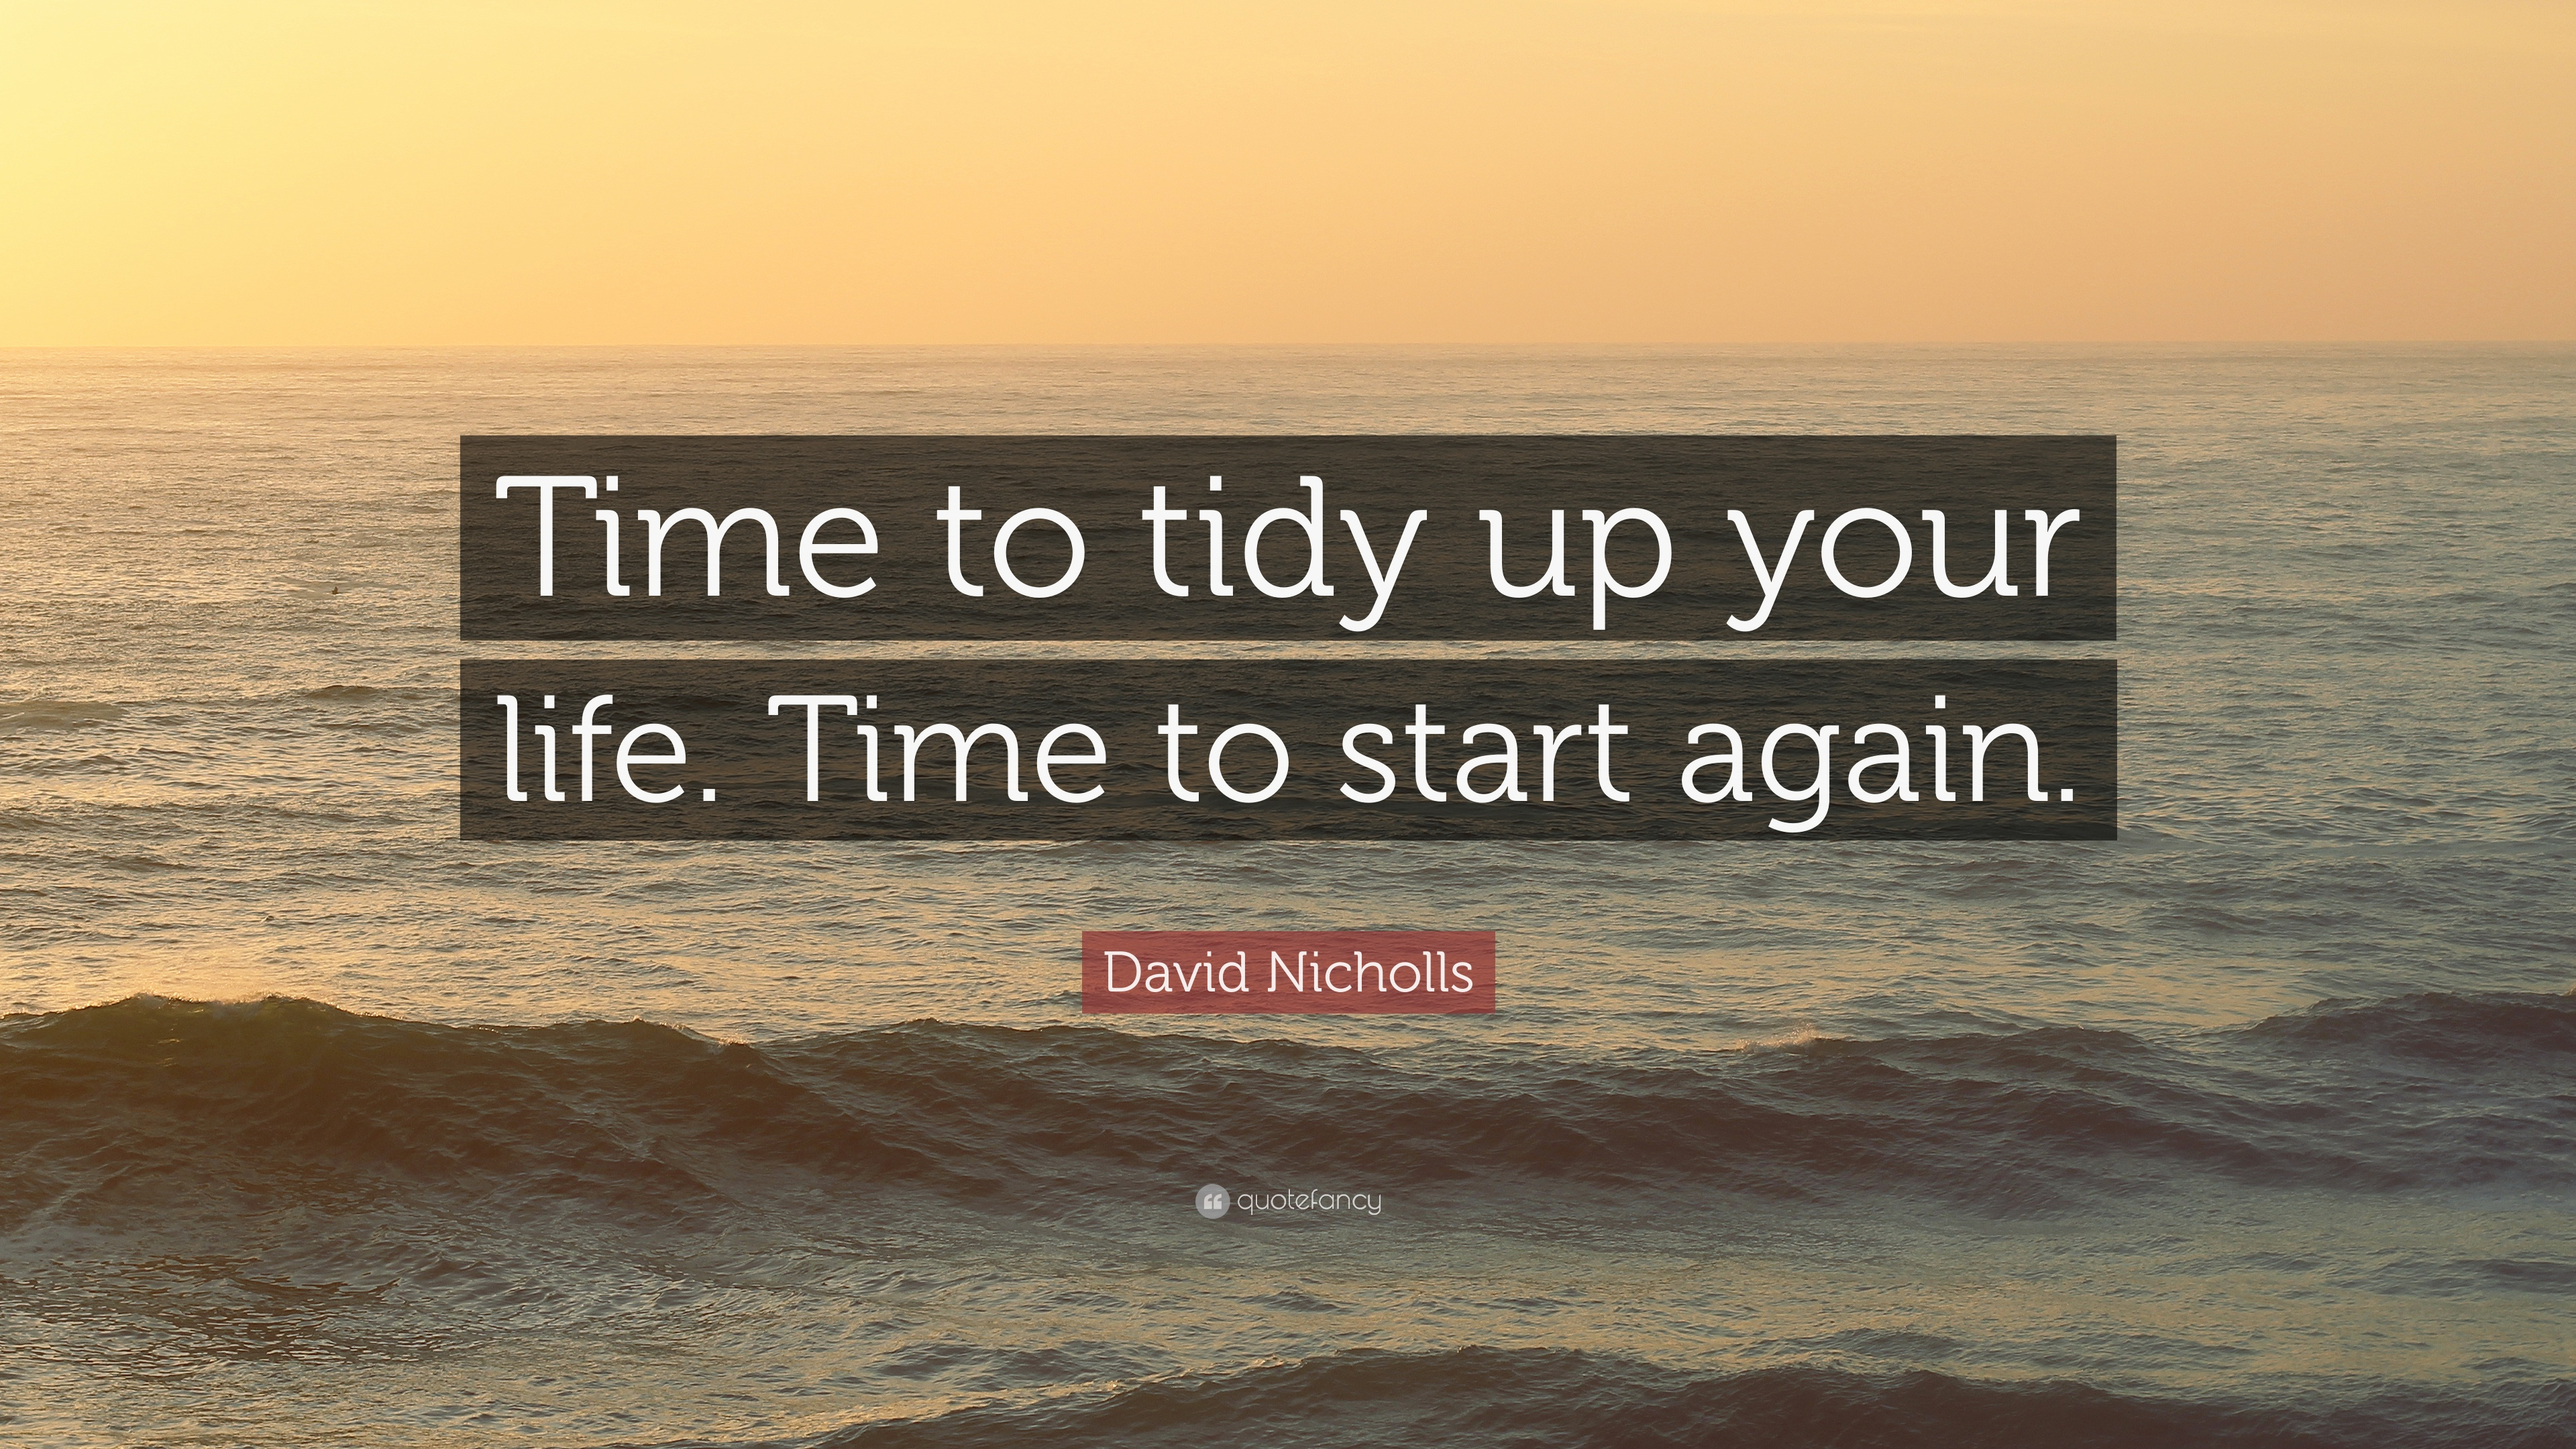 David Nicholls Quote Time To Tidy Up Your Life Time To Start